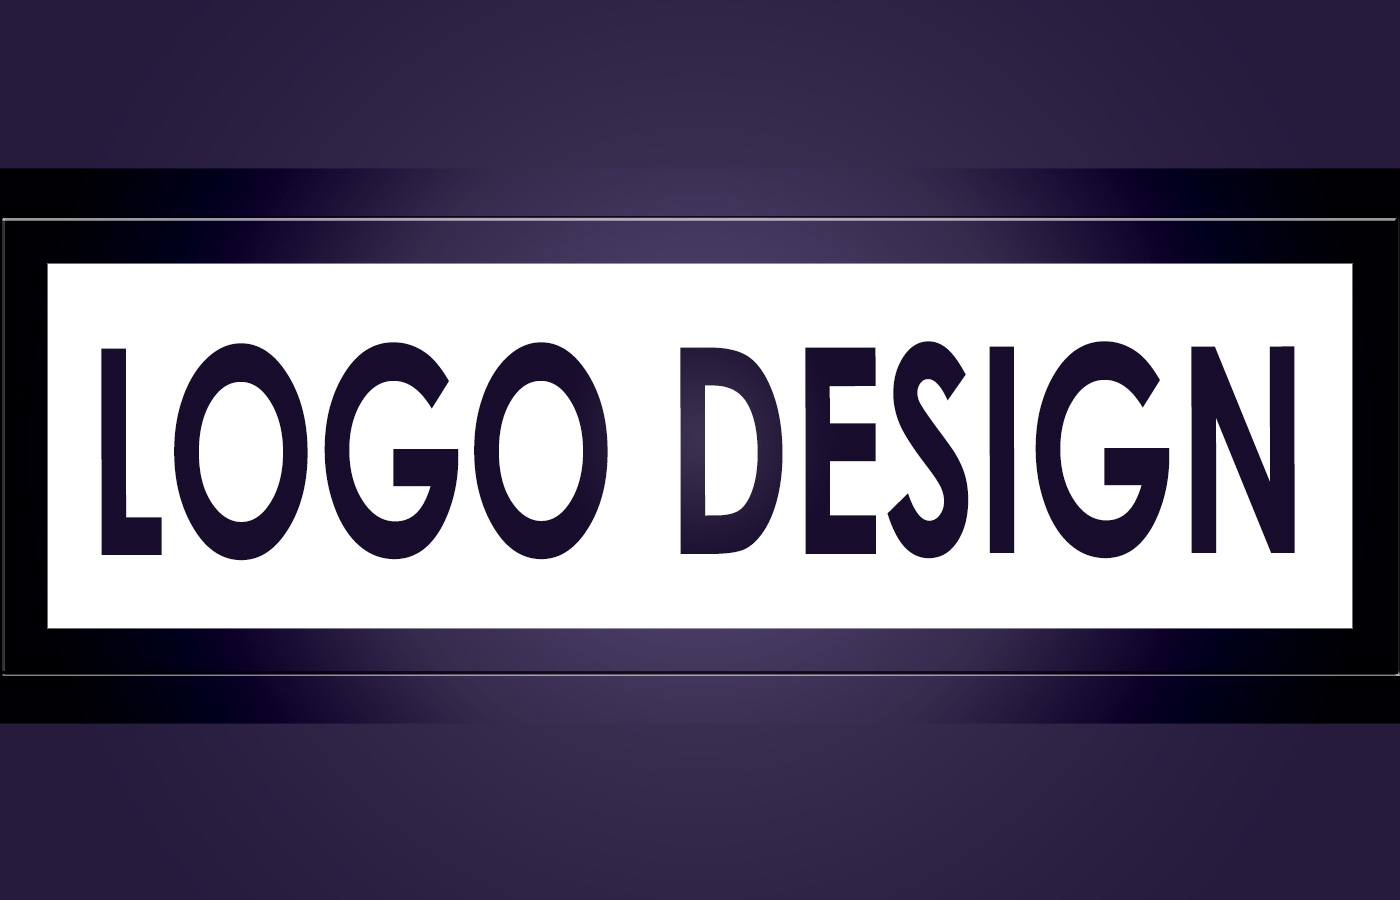 I design your banners-Cover Photos- Photo manipulations